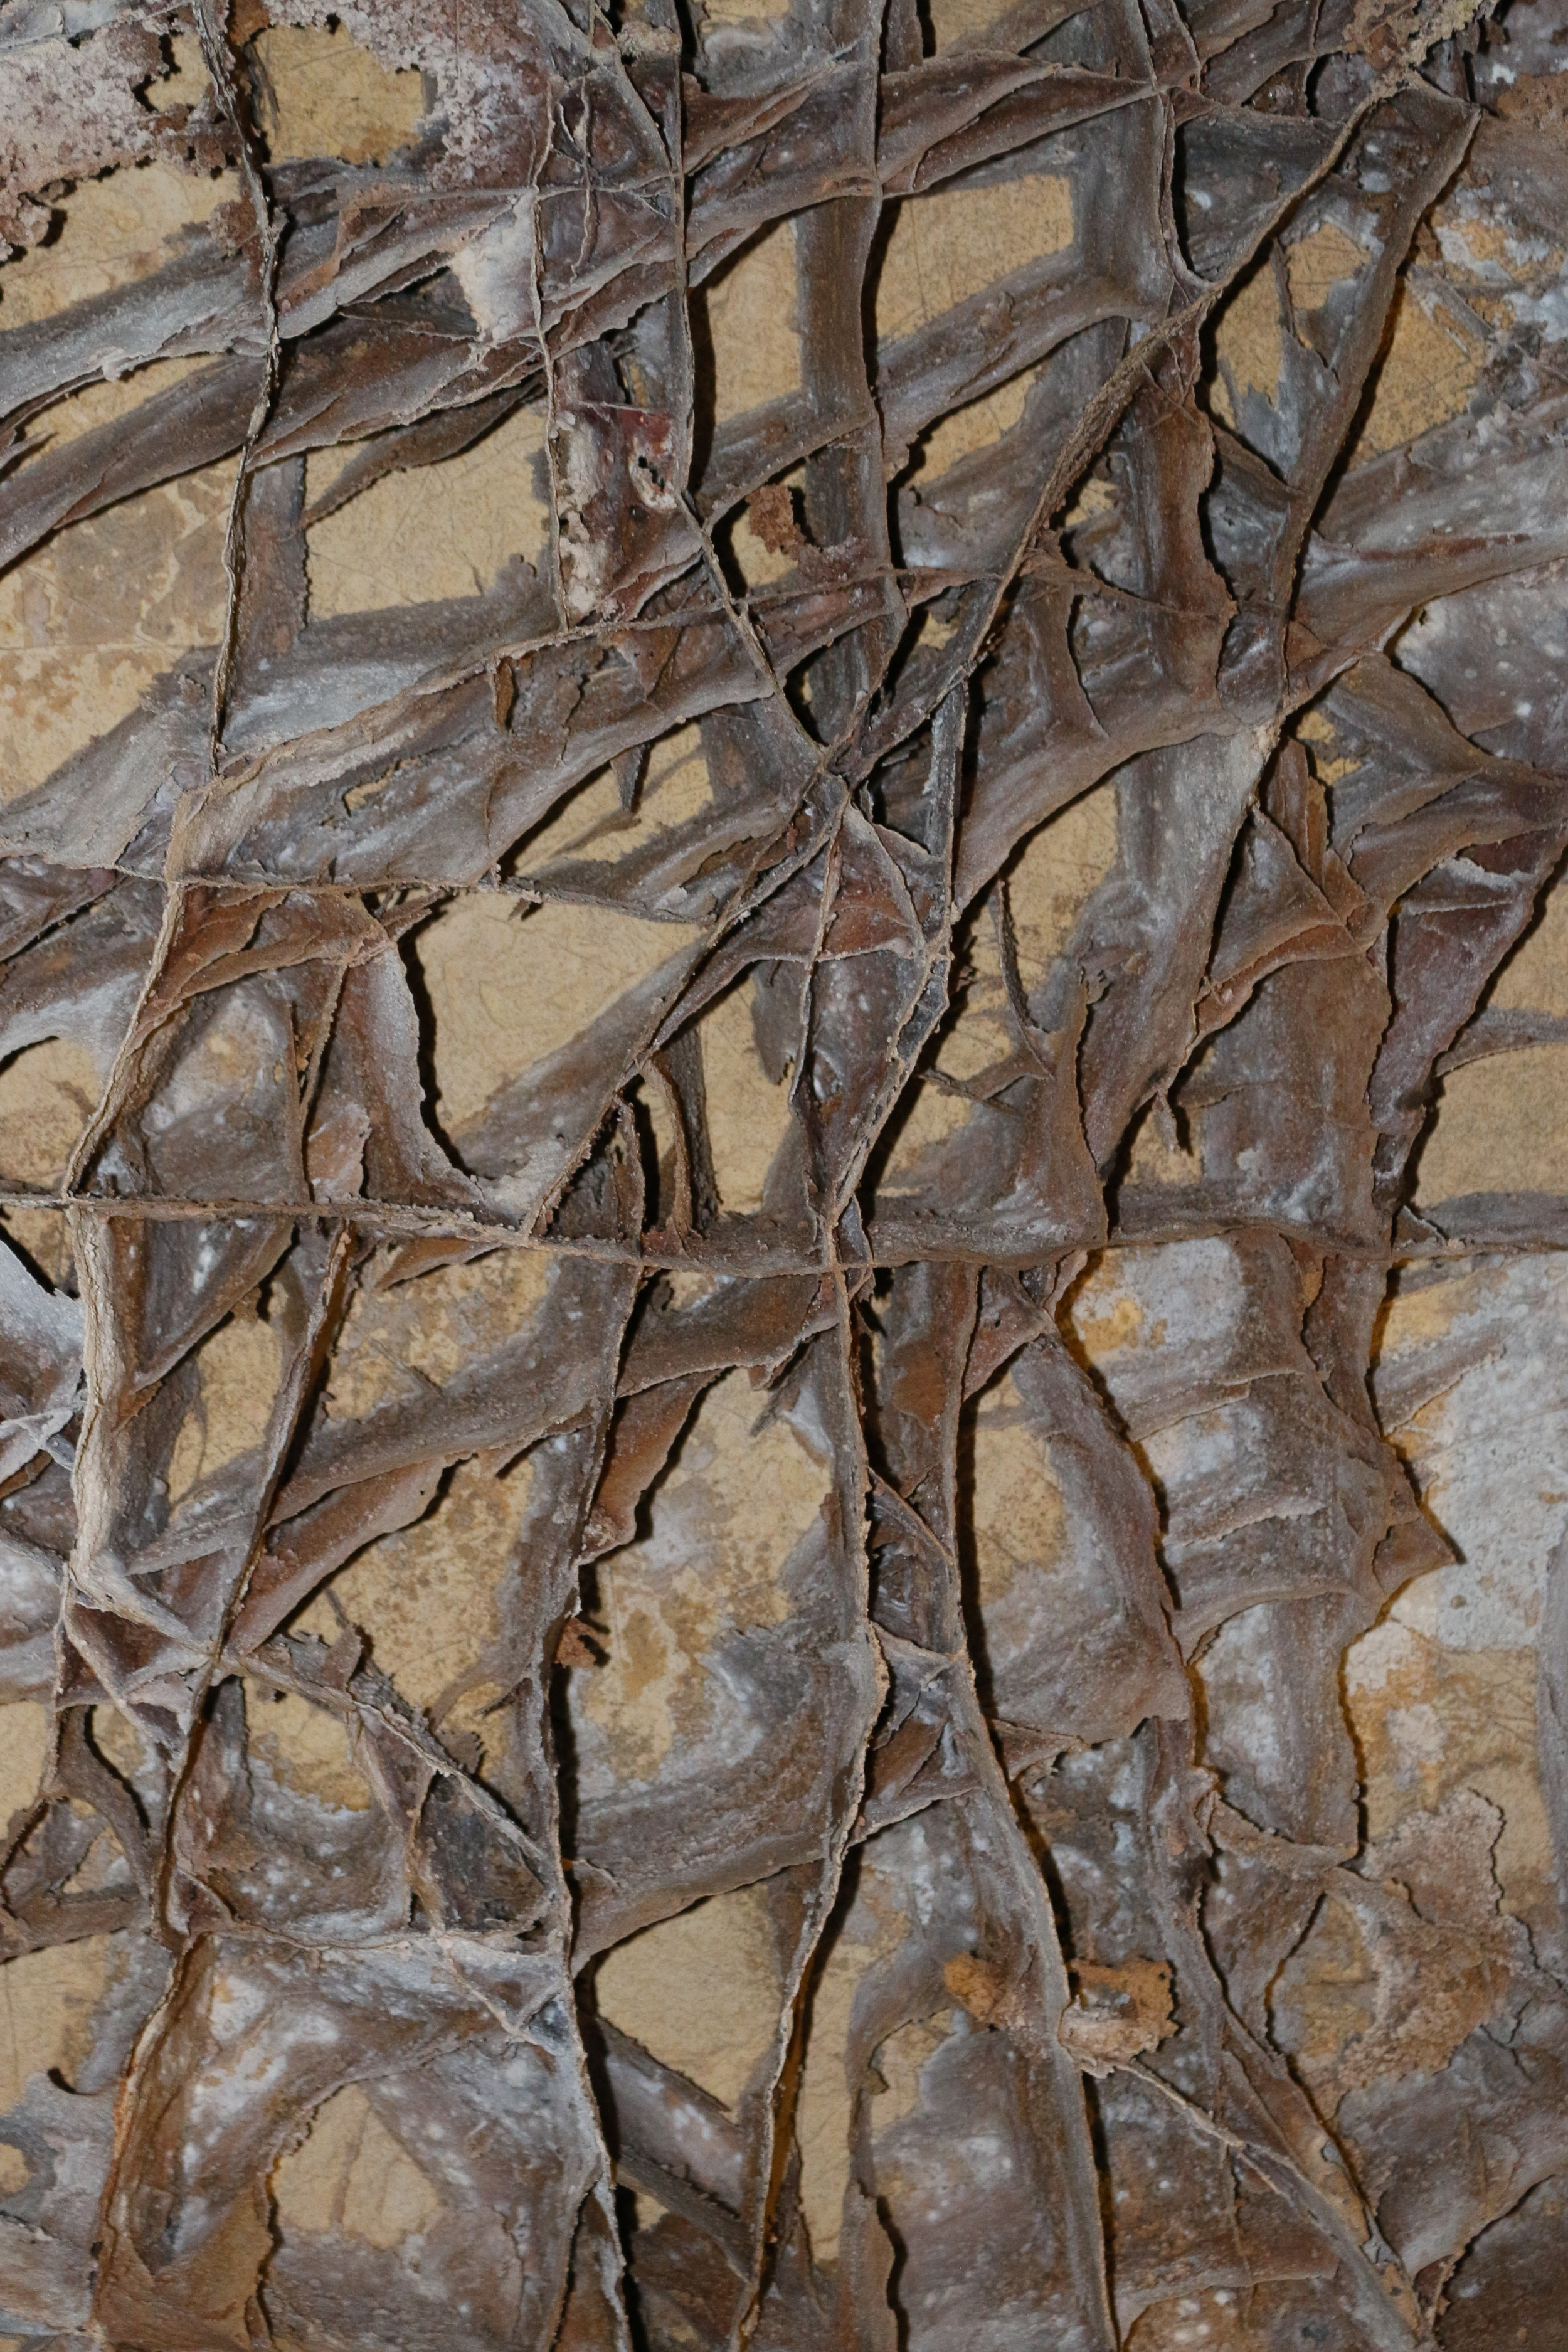 Boxwork - a rare cave formation - Wind Cave NP, SD.